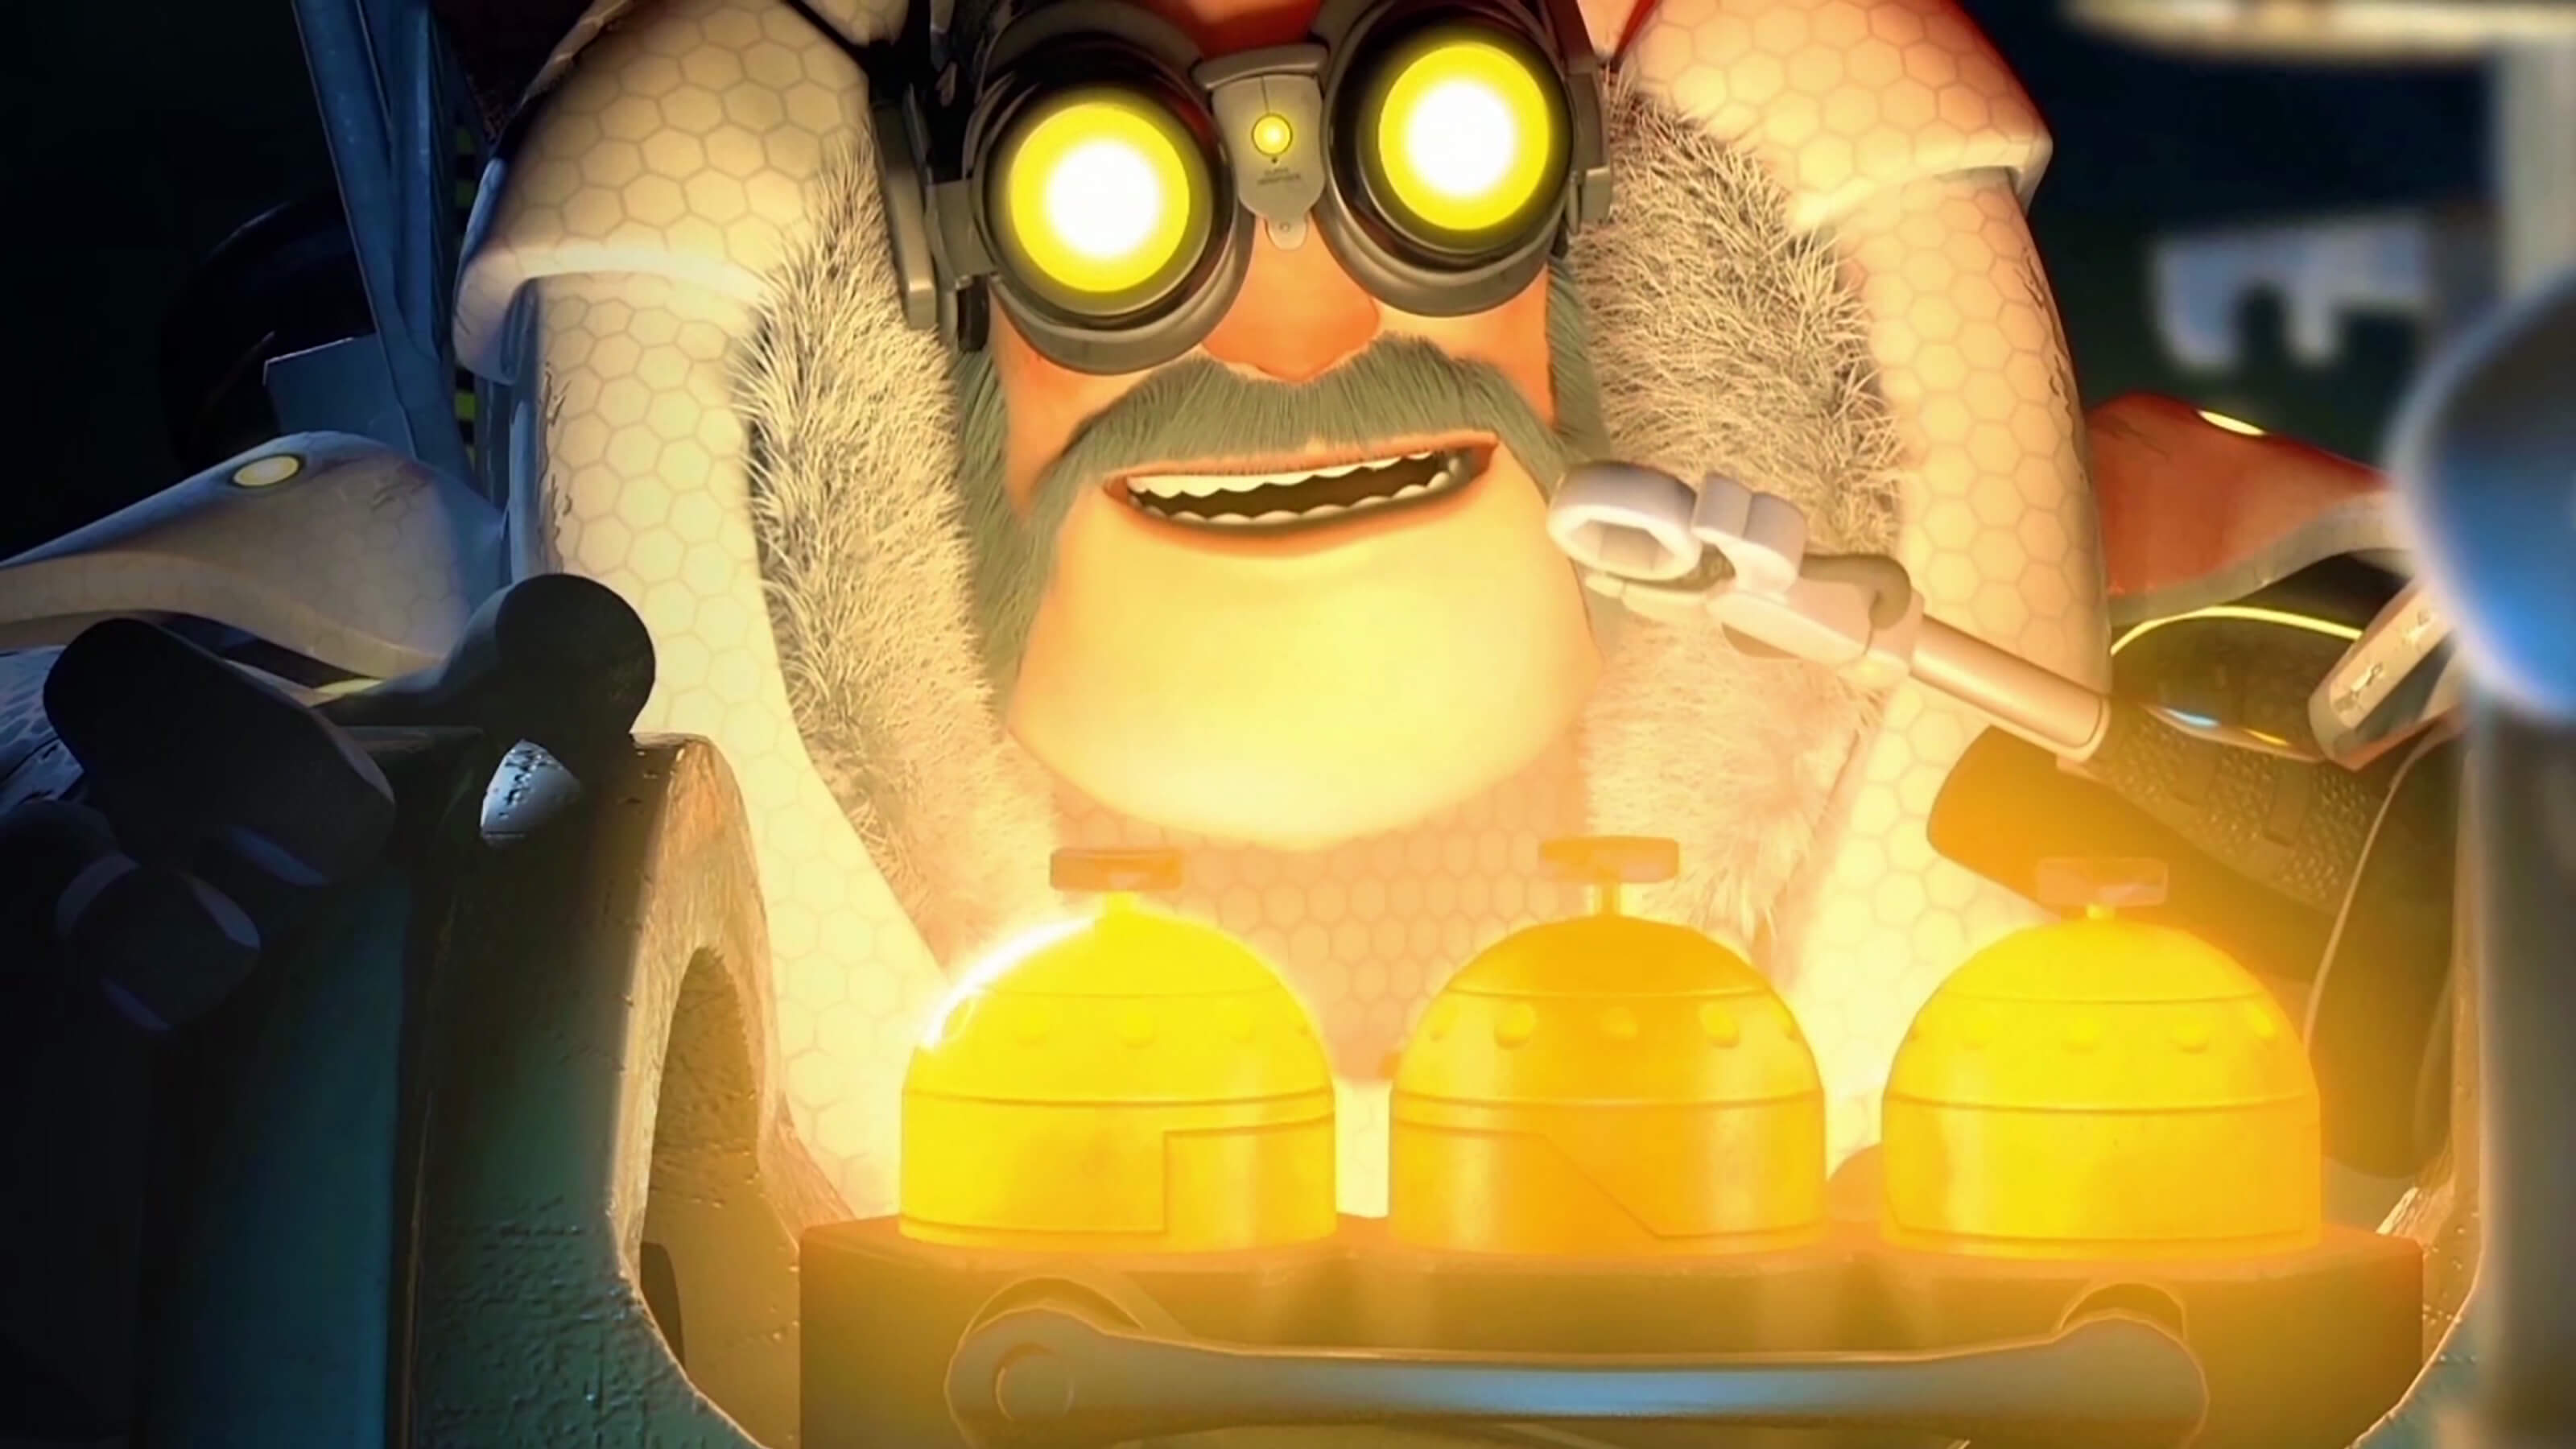 A man in a heavy fur coat and yellow goggles holds a nut in a pair of pliers in front of three glowing golden canisters